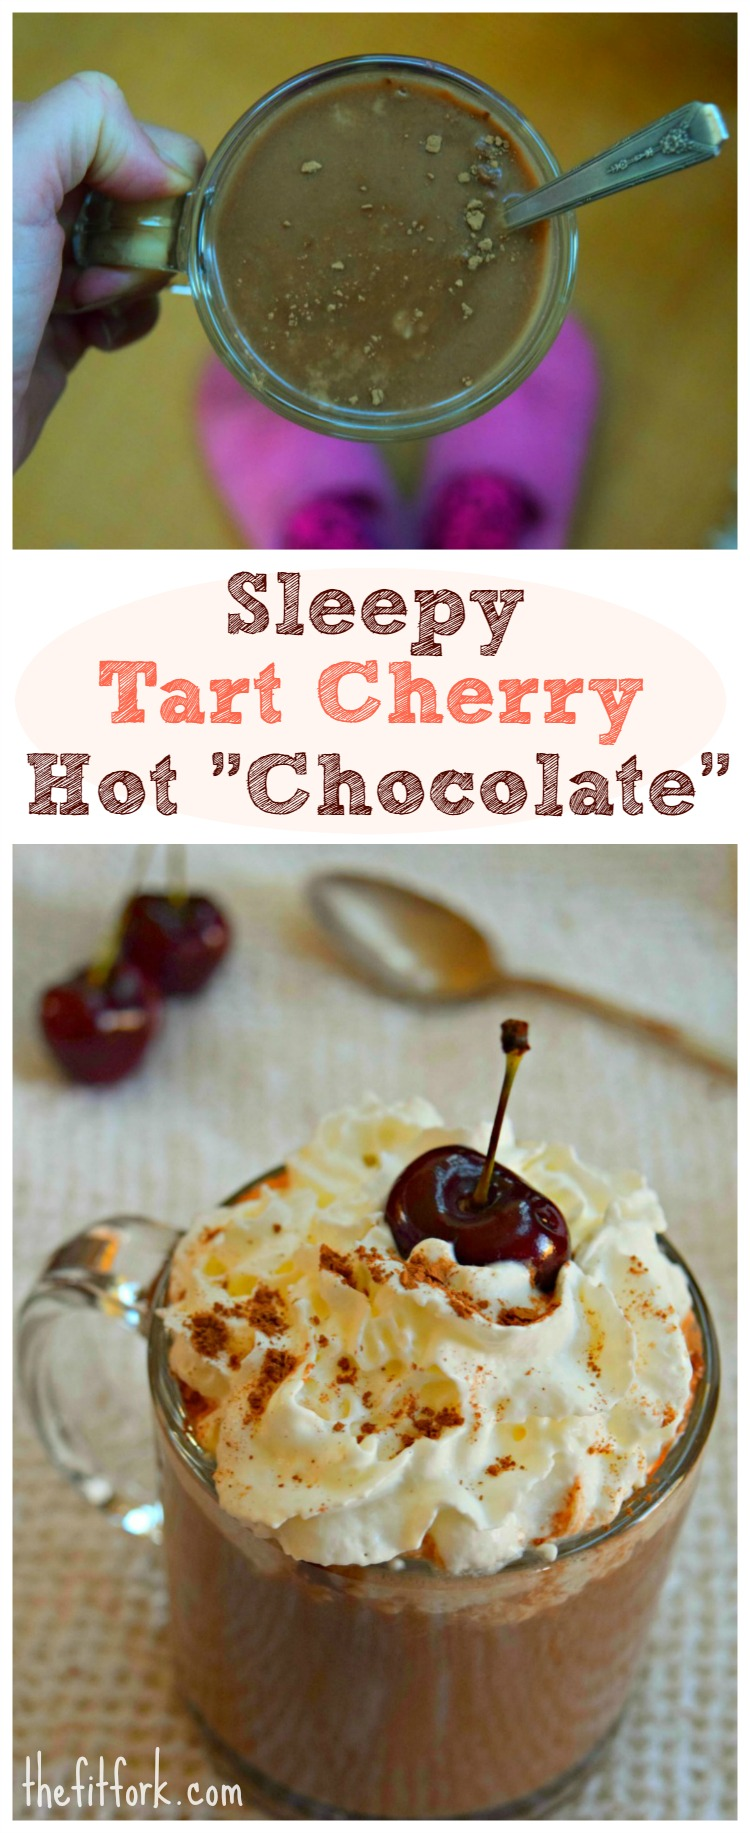 Sleepy Cherry Hot Chocolate features tart cherry juice and almond milk that both help to promote sleep. Additionally, carob powder instead of cocoa power keeps it caffeine free